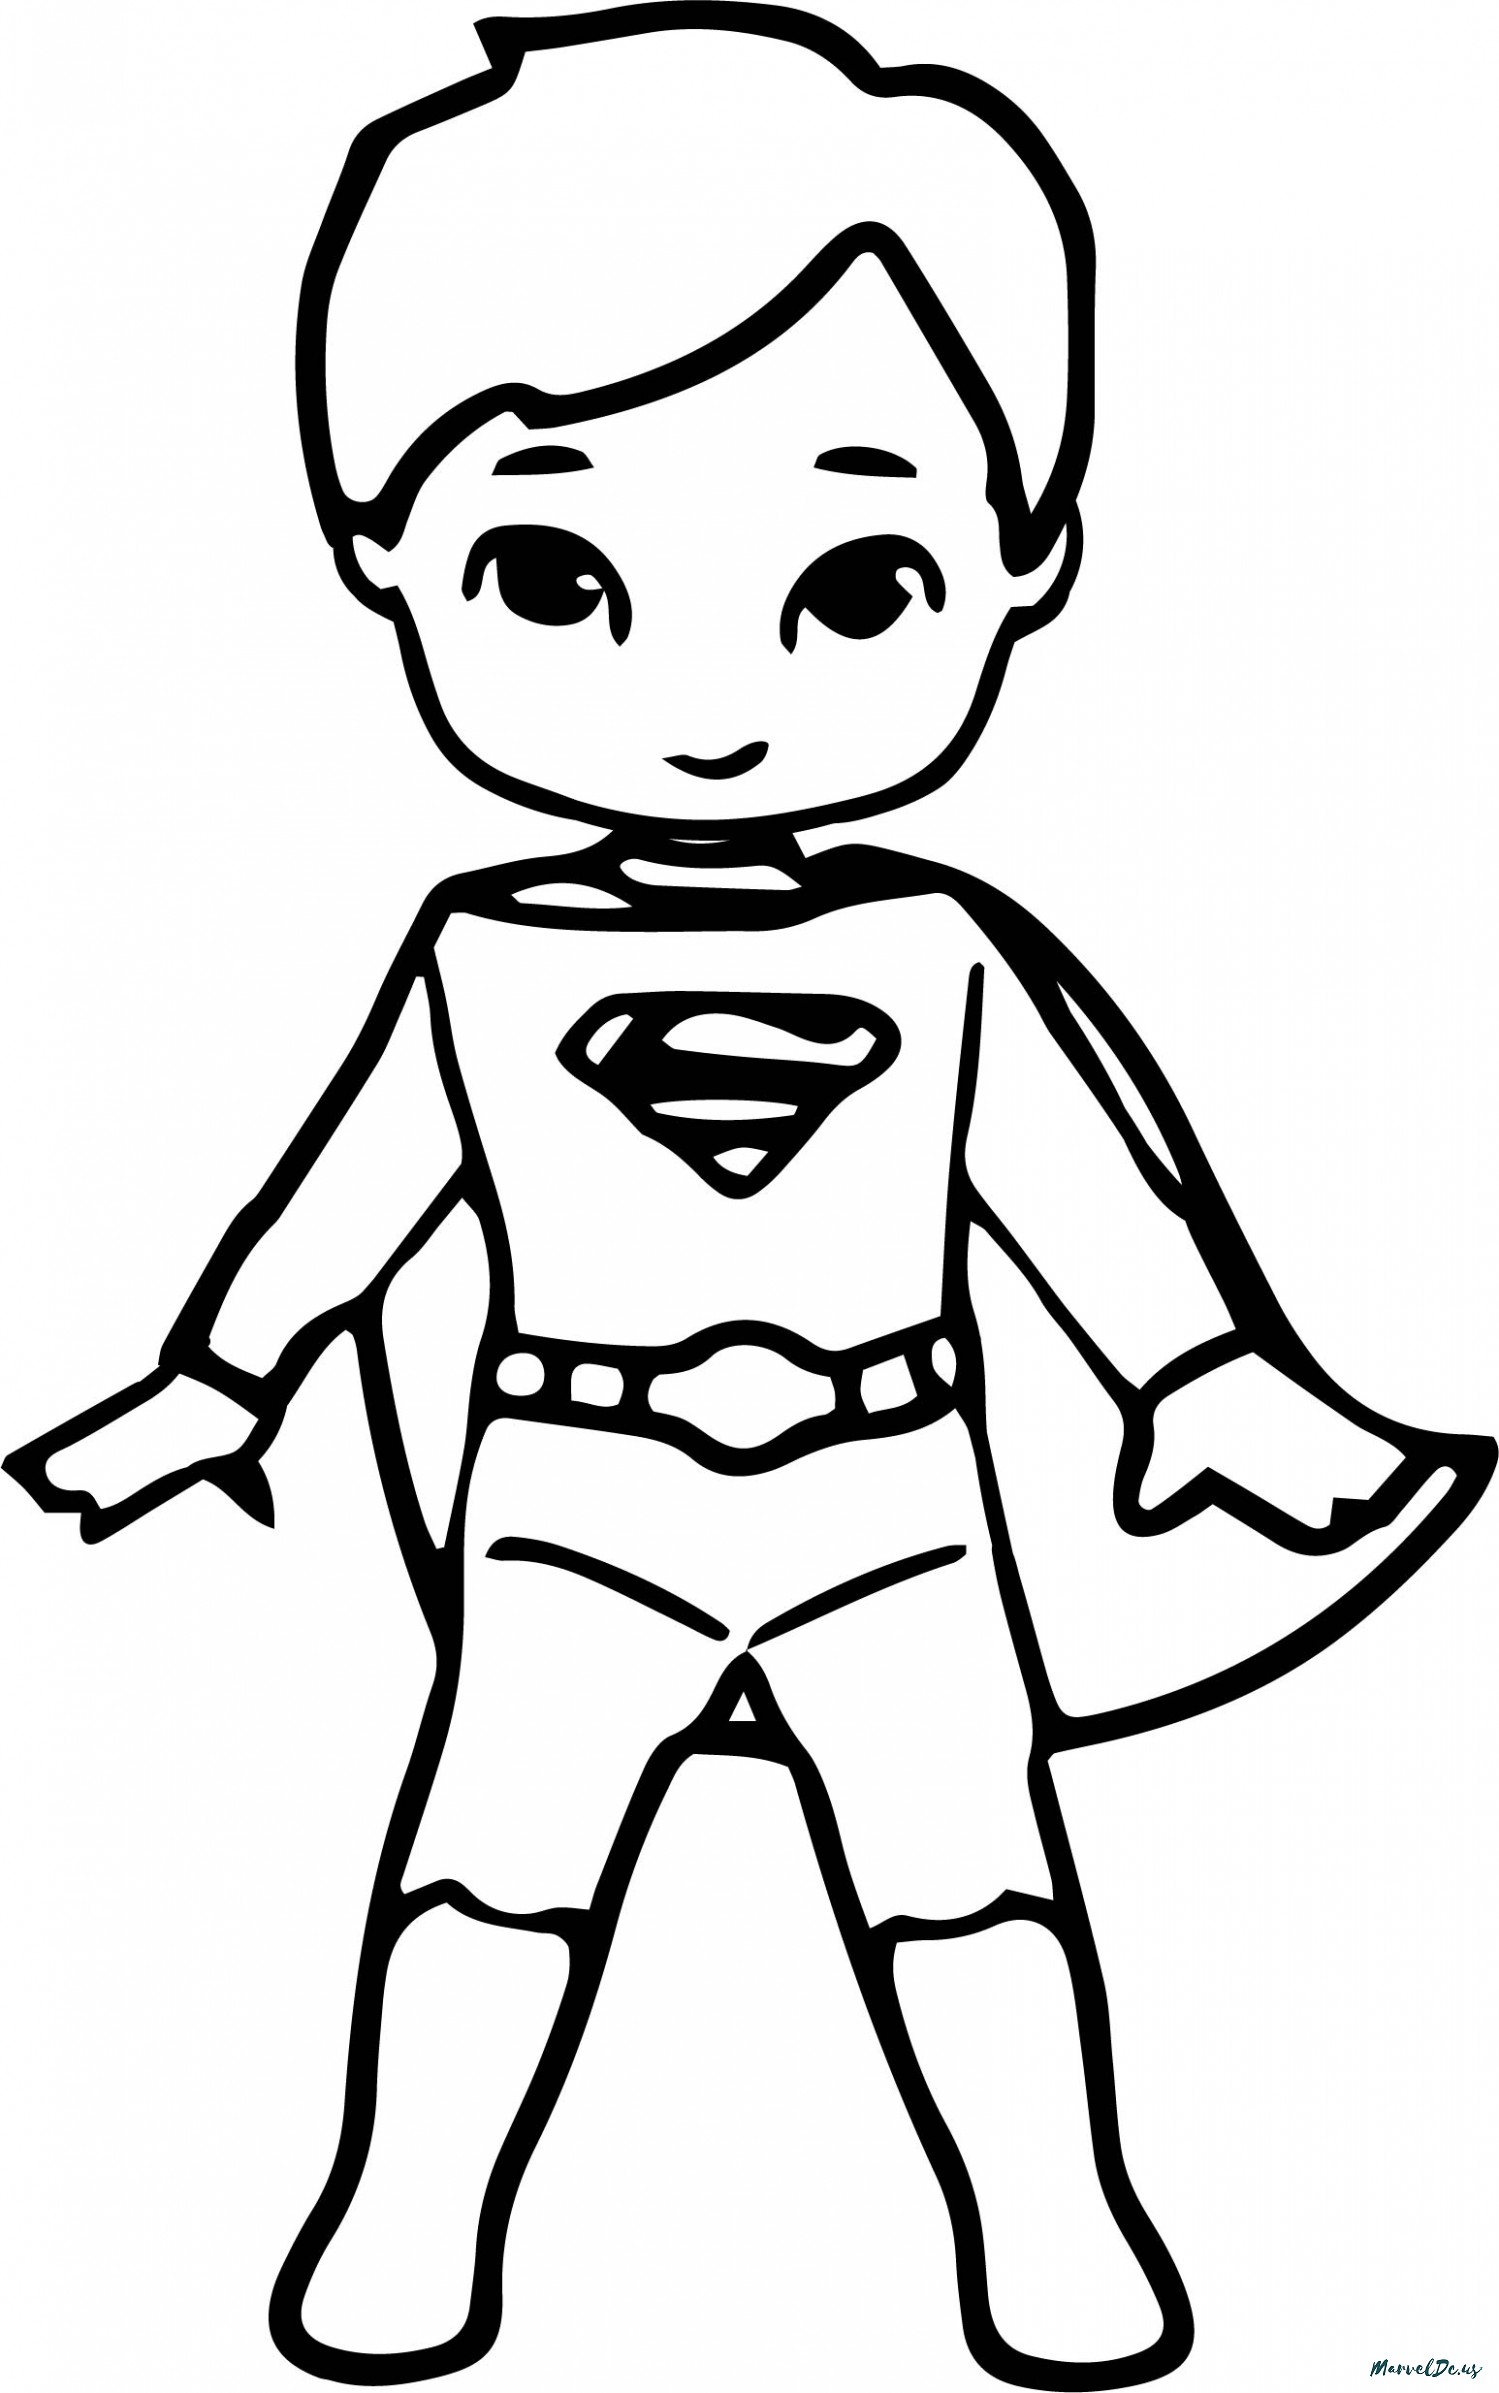 1499x2393 Superhero Cartoon Coloring Pages Heroes Of Marvel And Dc